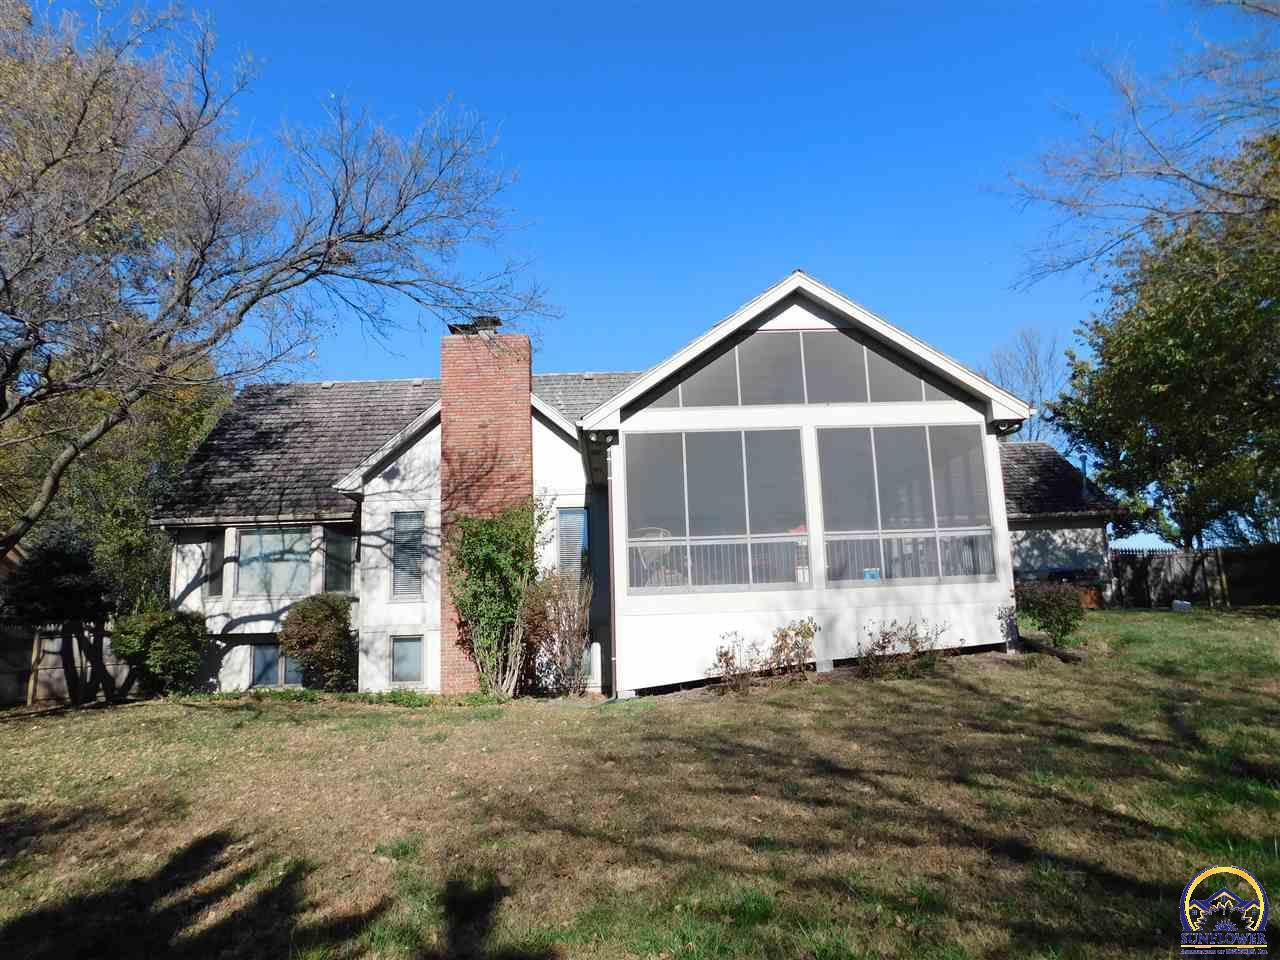 Topeka real estate 5851 sw clarion ln listing 192432 for Topeka home builders